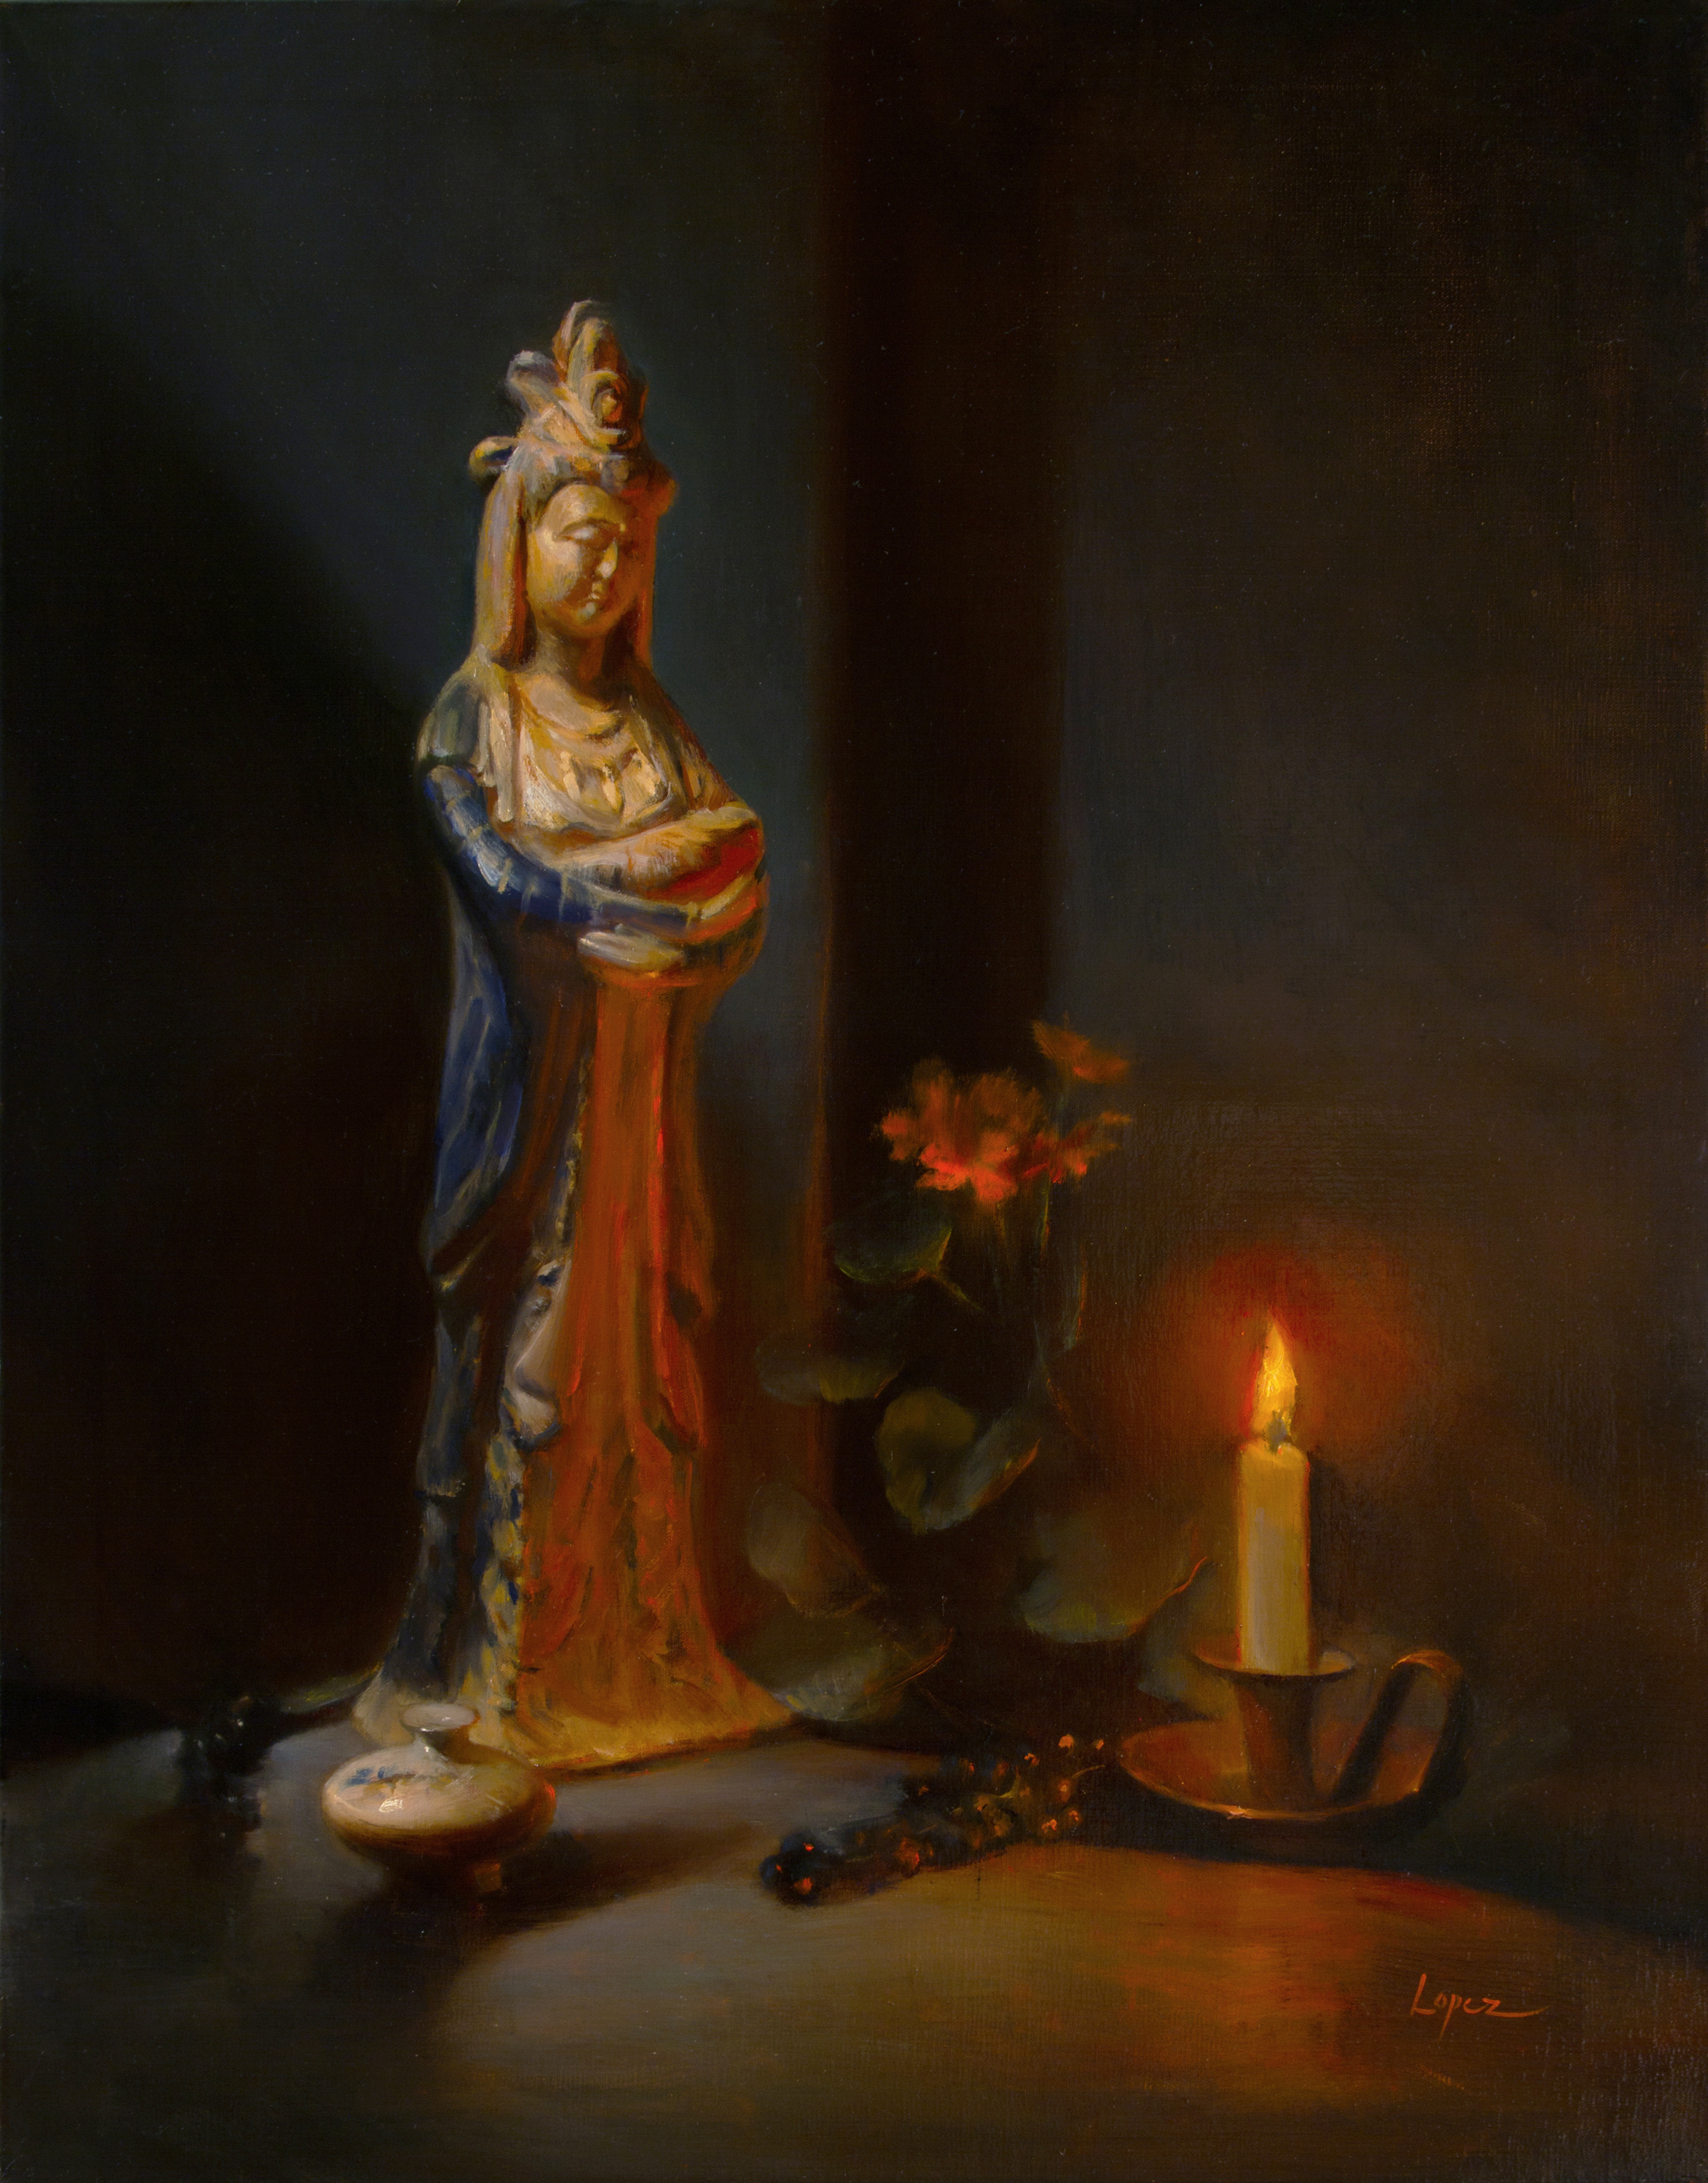 "A Prayer For Compassion (Guan Yin), oil 28x22""  ""Painting is both a composed intention and a revelation, and always a reflection of spirit.  I select subjects that I feel connected to, and the painting becomes my teacher, my mirror.   A Prayer for Compassion  is artwork that also pays homage to the feminine deity, Guan Yin.  Known by dozens of names, and many more histories, Guan Yin is the goddess of mercy, empathy and compassion. Her truths are our truths.  She is deeply woven into the fabric of us.  Her presence is the warmth of our hearts.  Our longing for compassion motivates us, so in return, we illuminate her figure, just as a gentle ray of hope shines a little light upon us all."